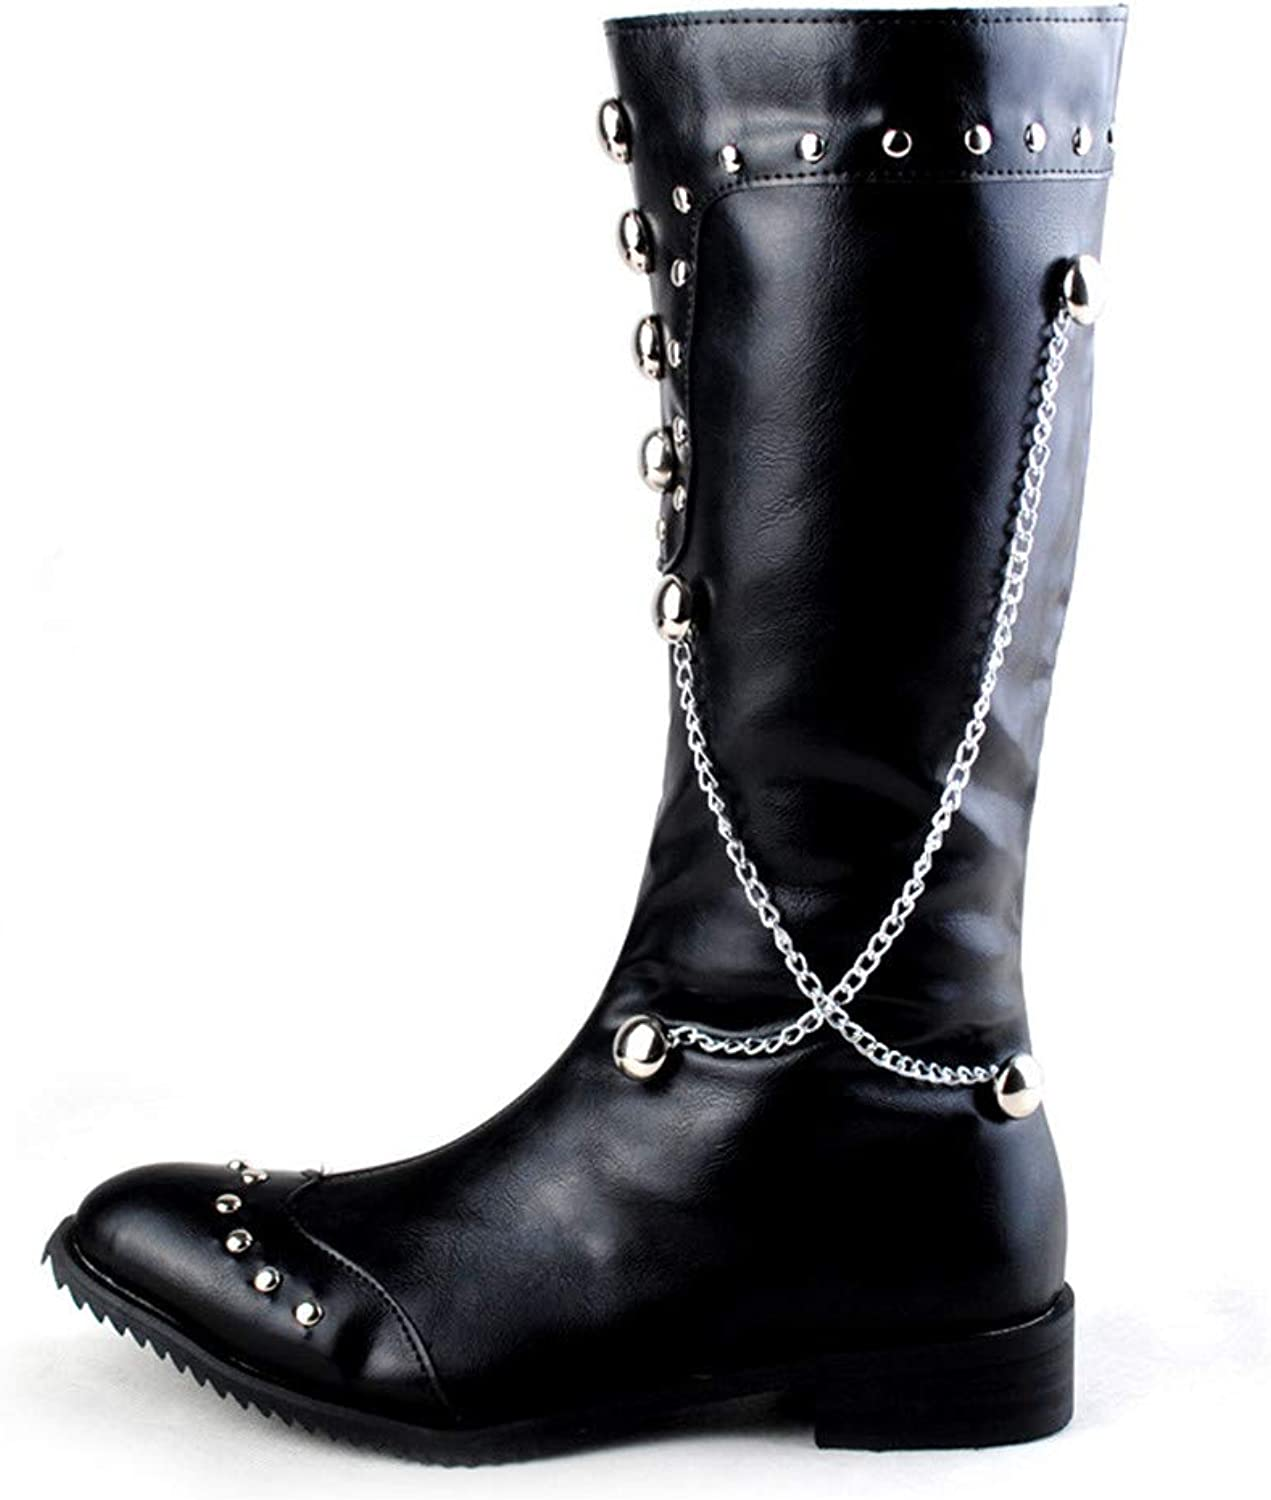 Jiahe Motorcycle Leather shoes for Men Zipper-up Chukka Boots Western Cowboy Boots with Fashion Hanging Chain Rivets,39